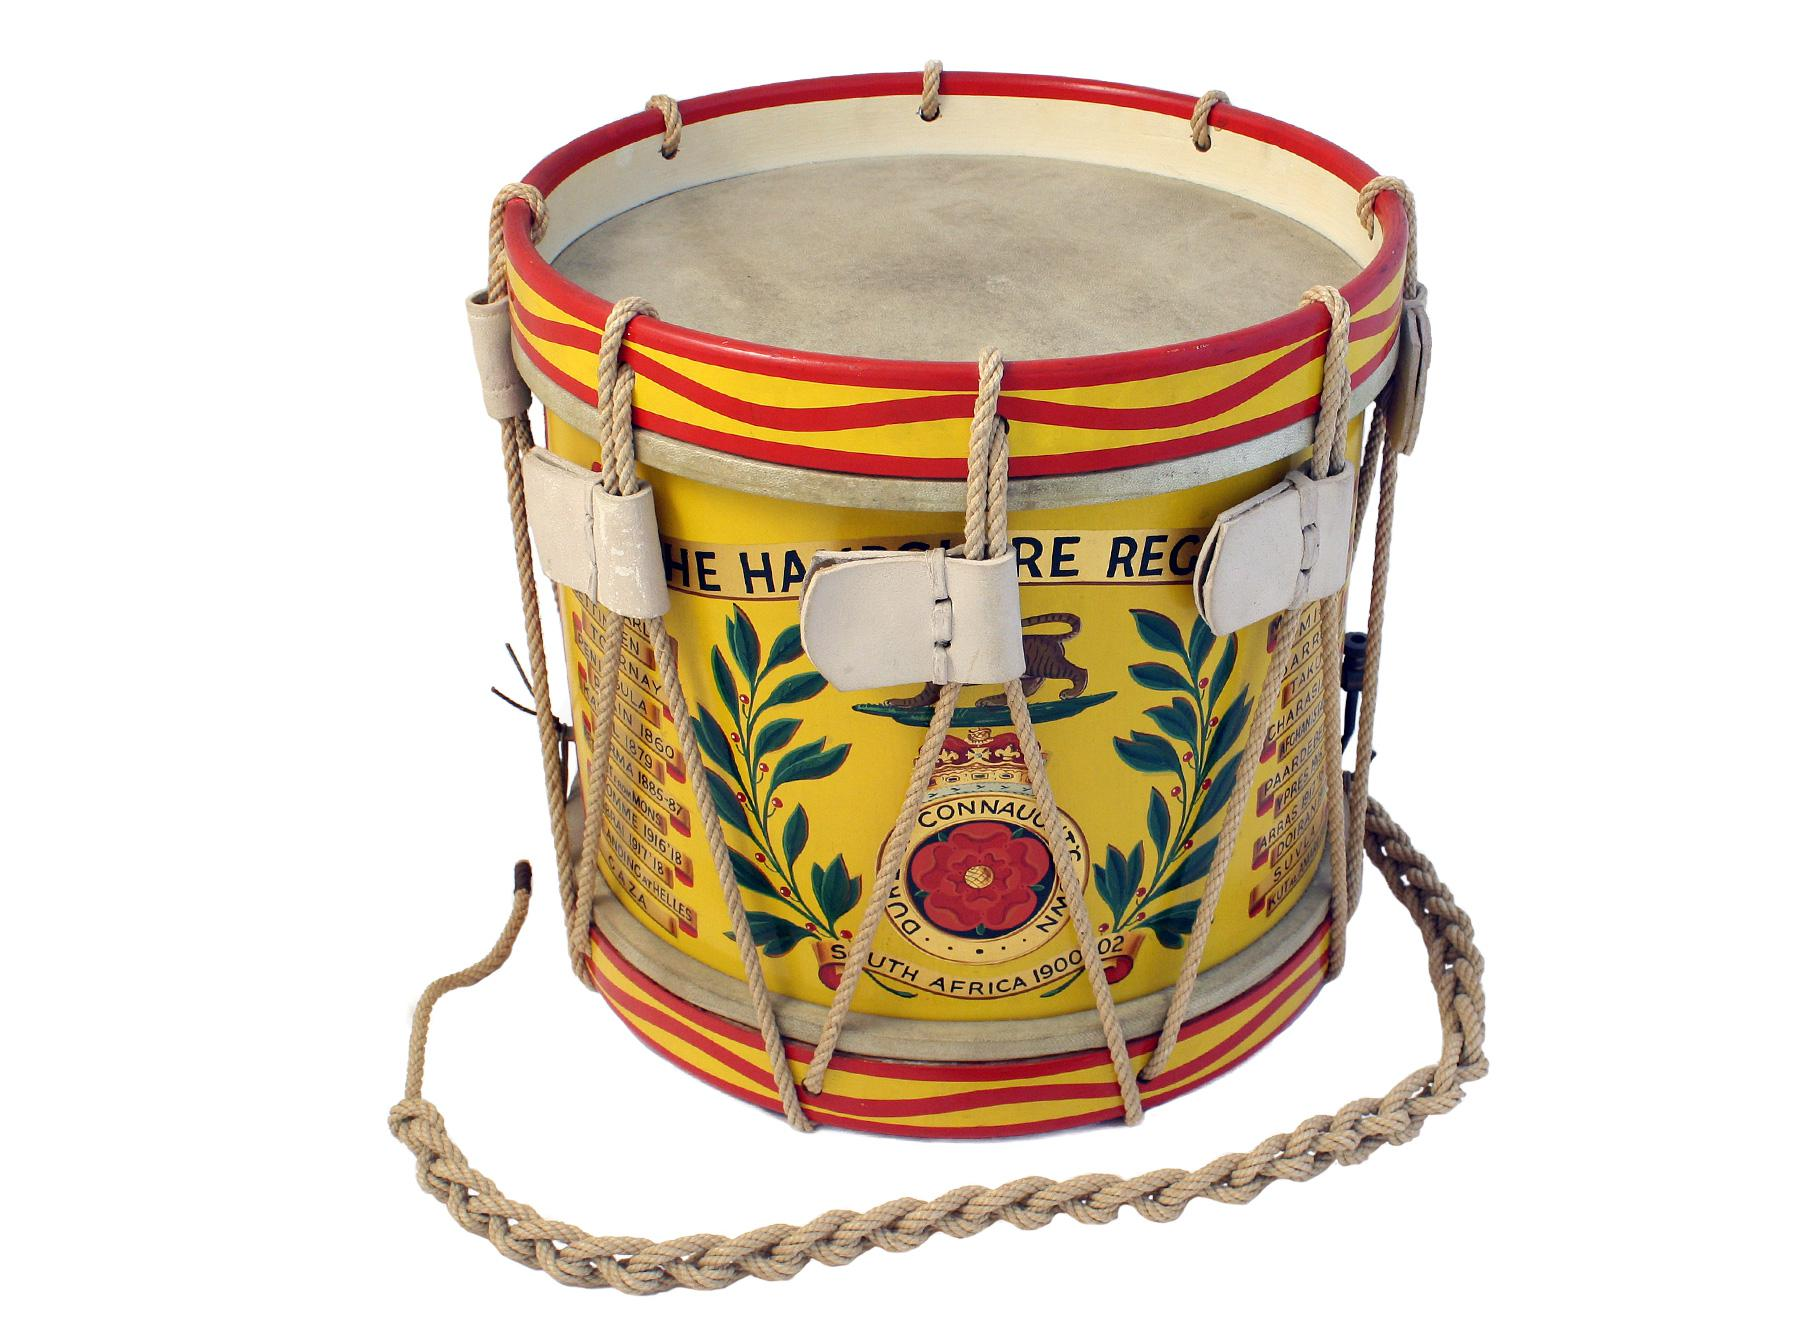 A Regimentally Marked Drum